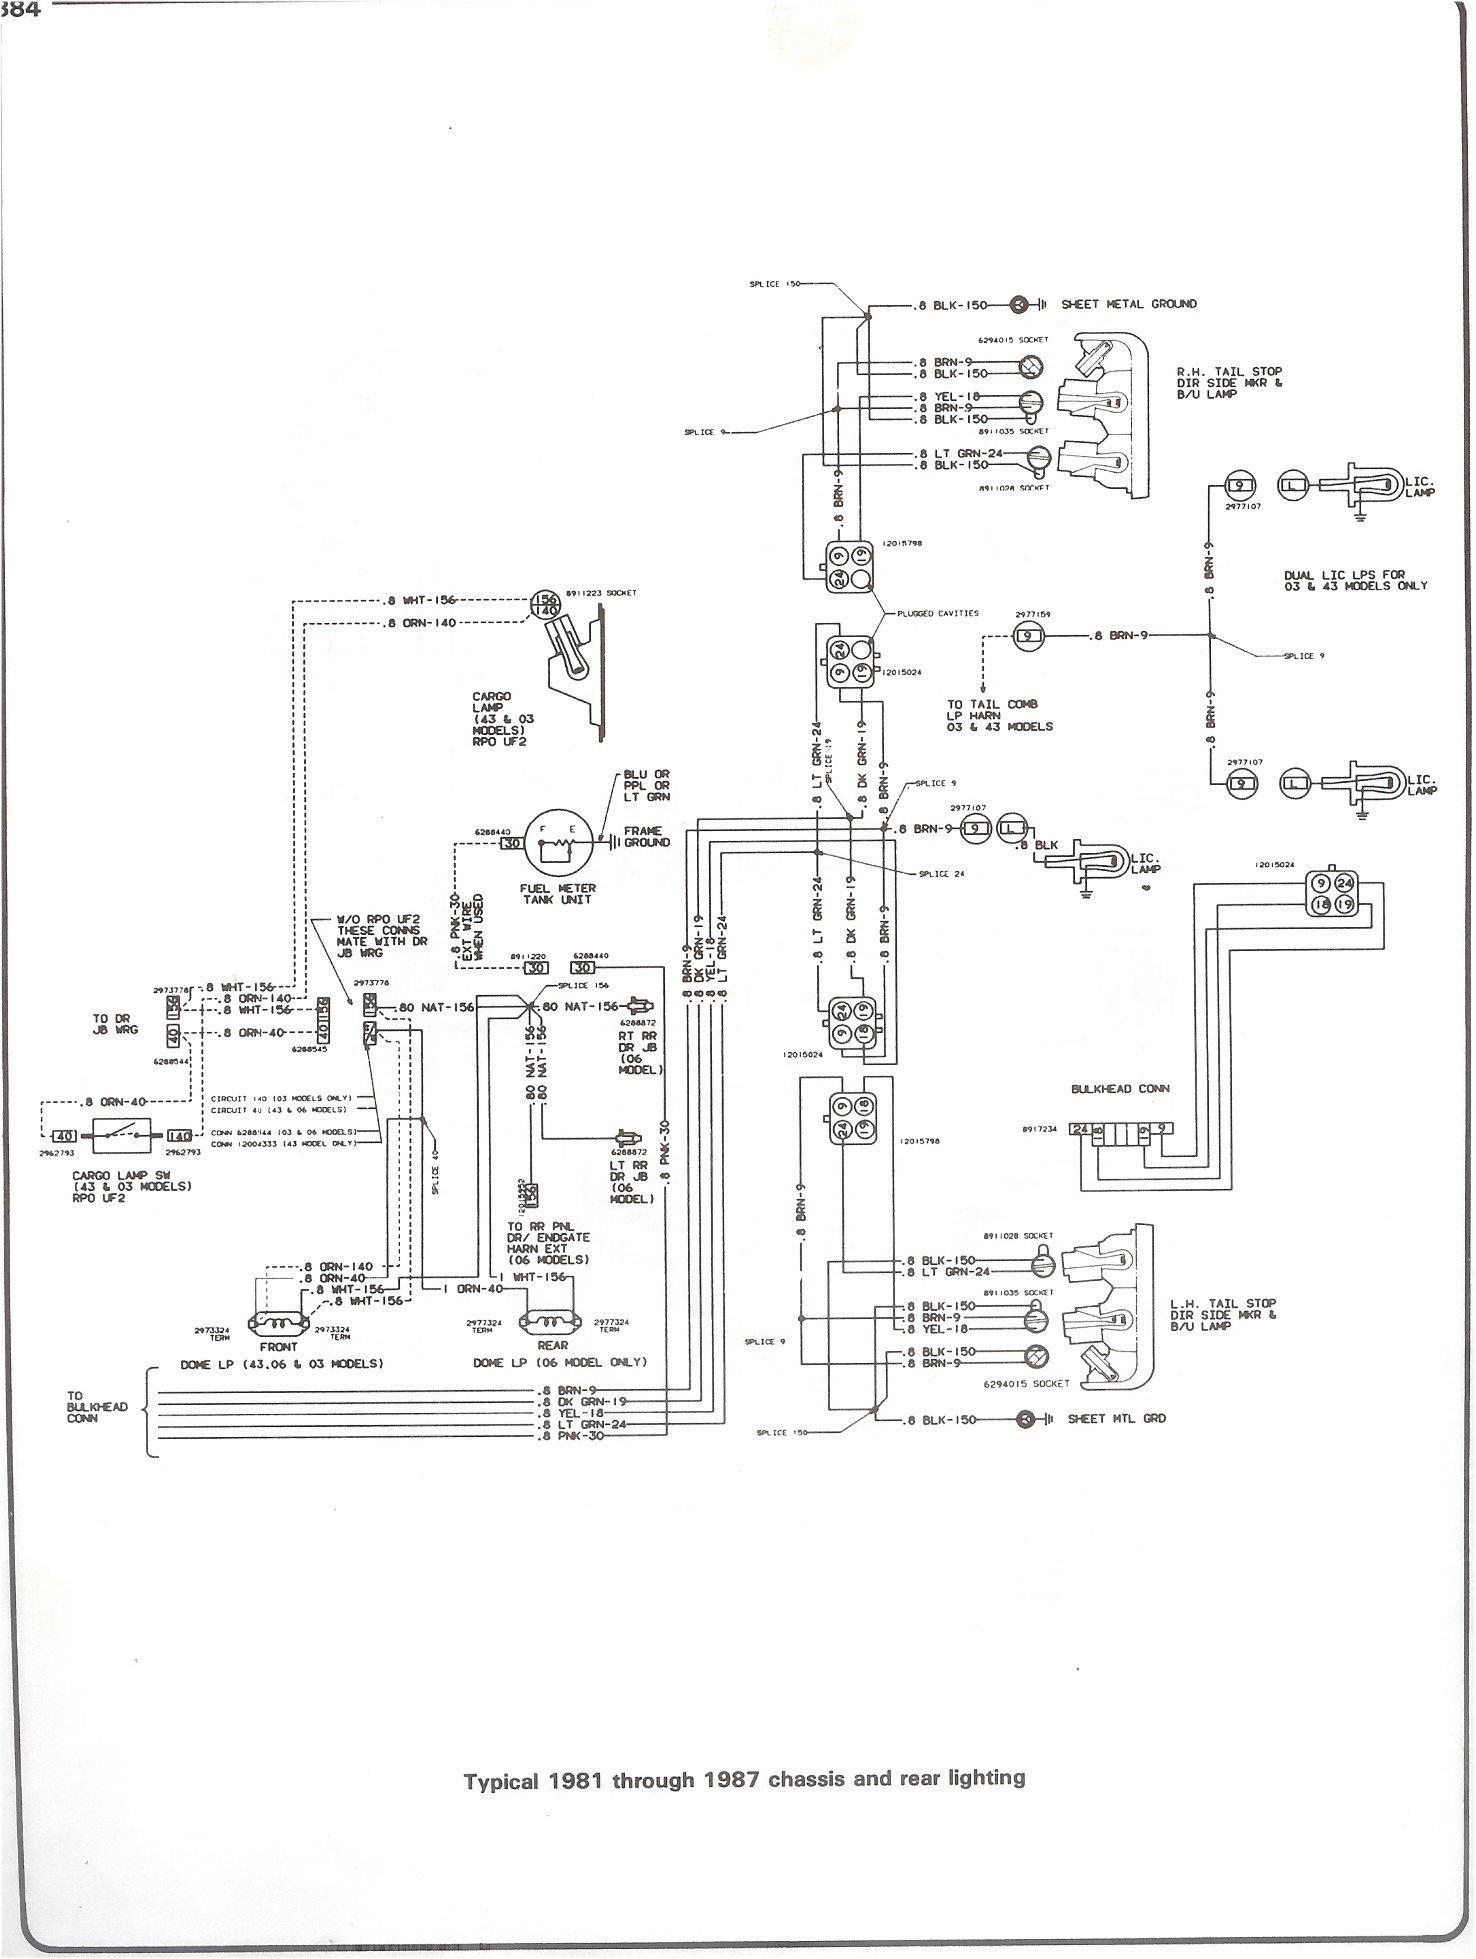 1987 chevy truck wiper motor wiring diagram